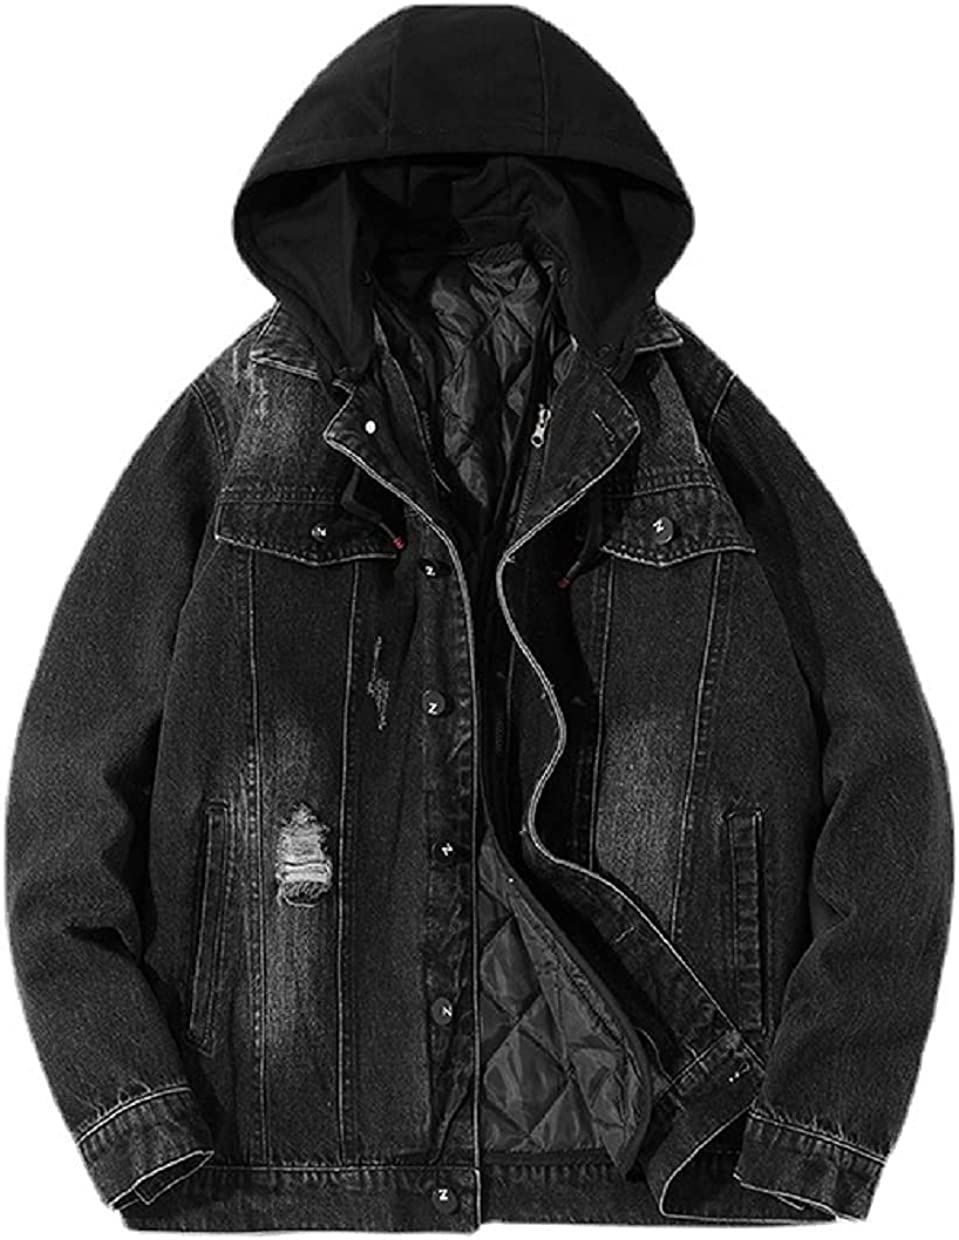 Chartou Men's Removable Hooded Distressed Oversized Diamond Quilted Liner Denim Jacket Coat